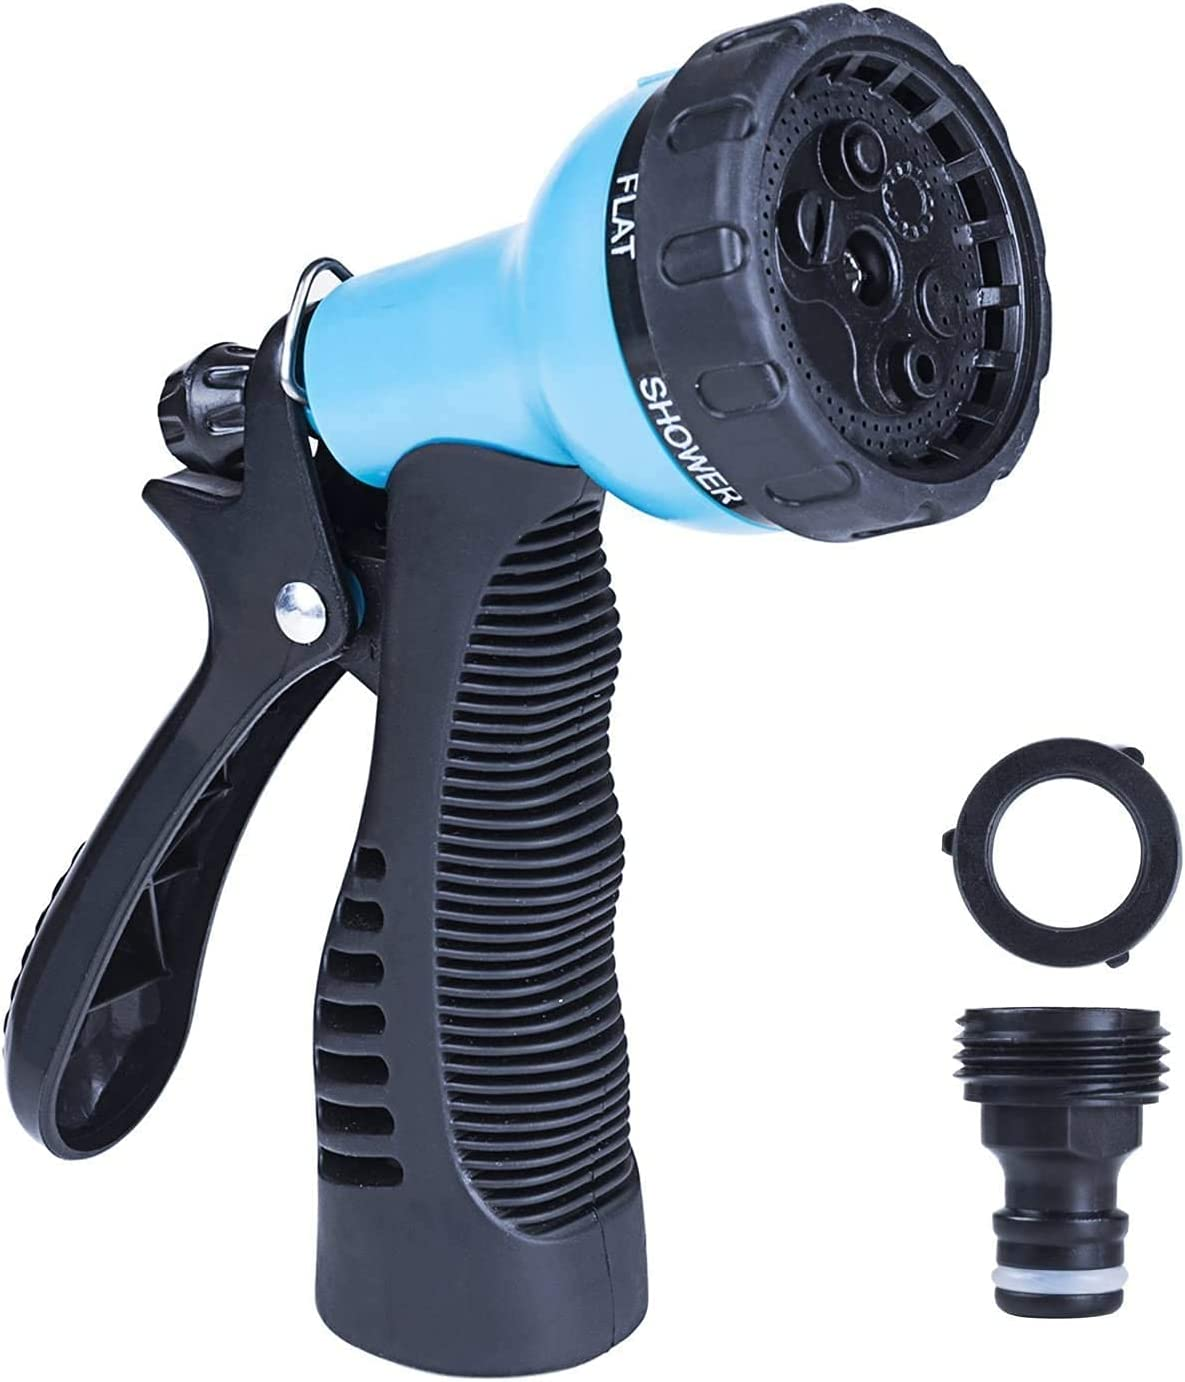 Garden Hose Nozzle/High Pressure Sprayer, Multiple Adjustable Spray Modes, Suitable For Watering Equipment, Cleaning, Car washing And Showering Pets